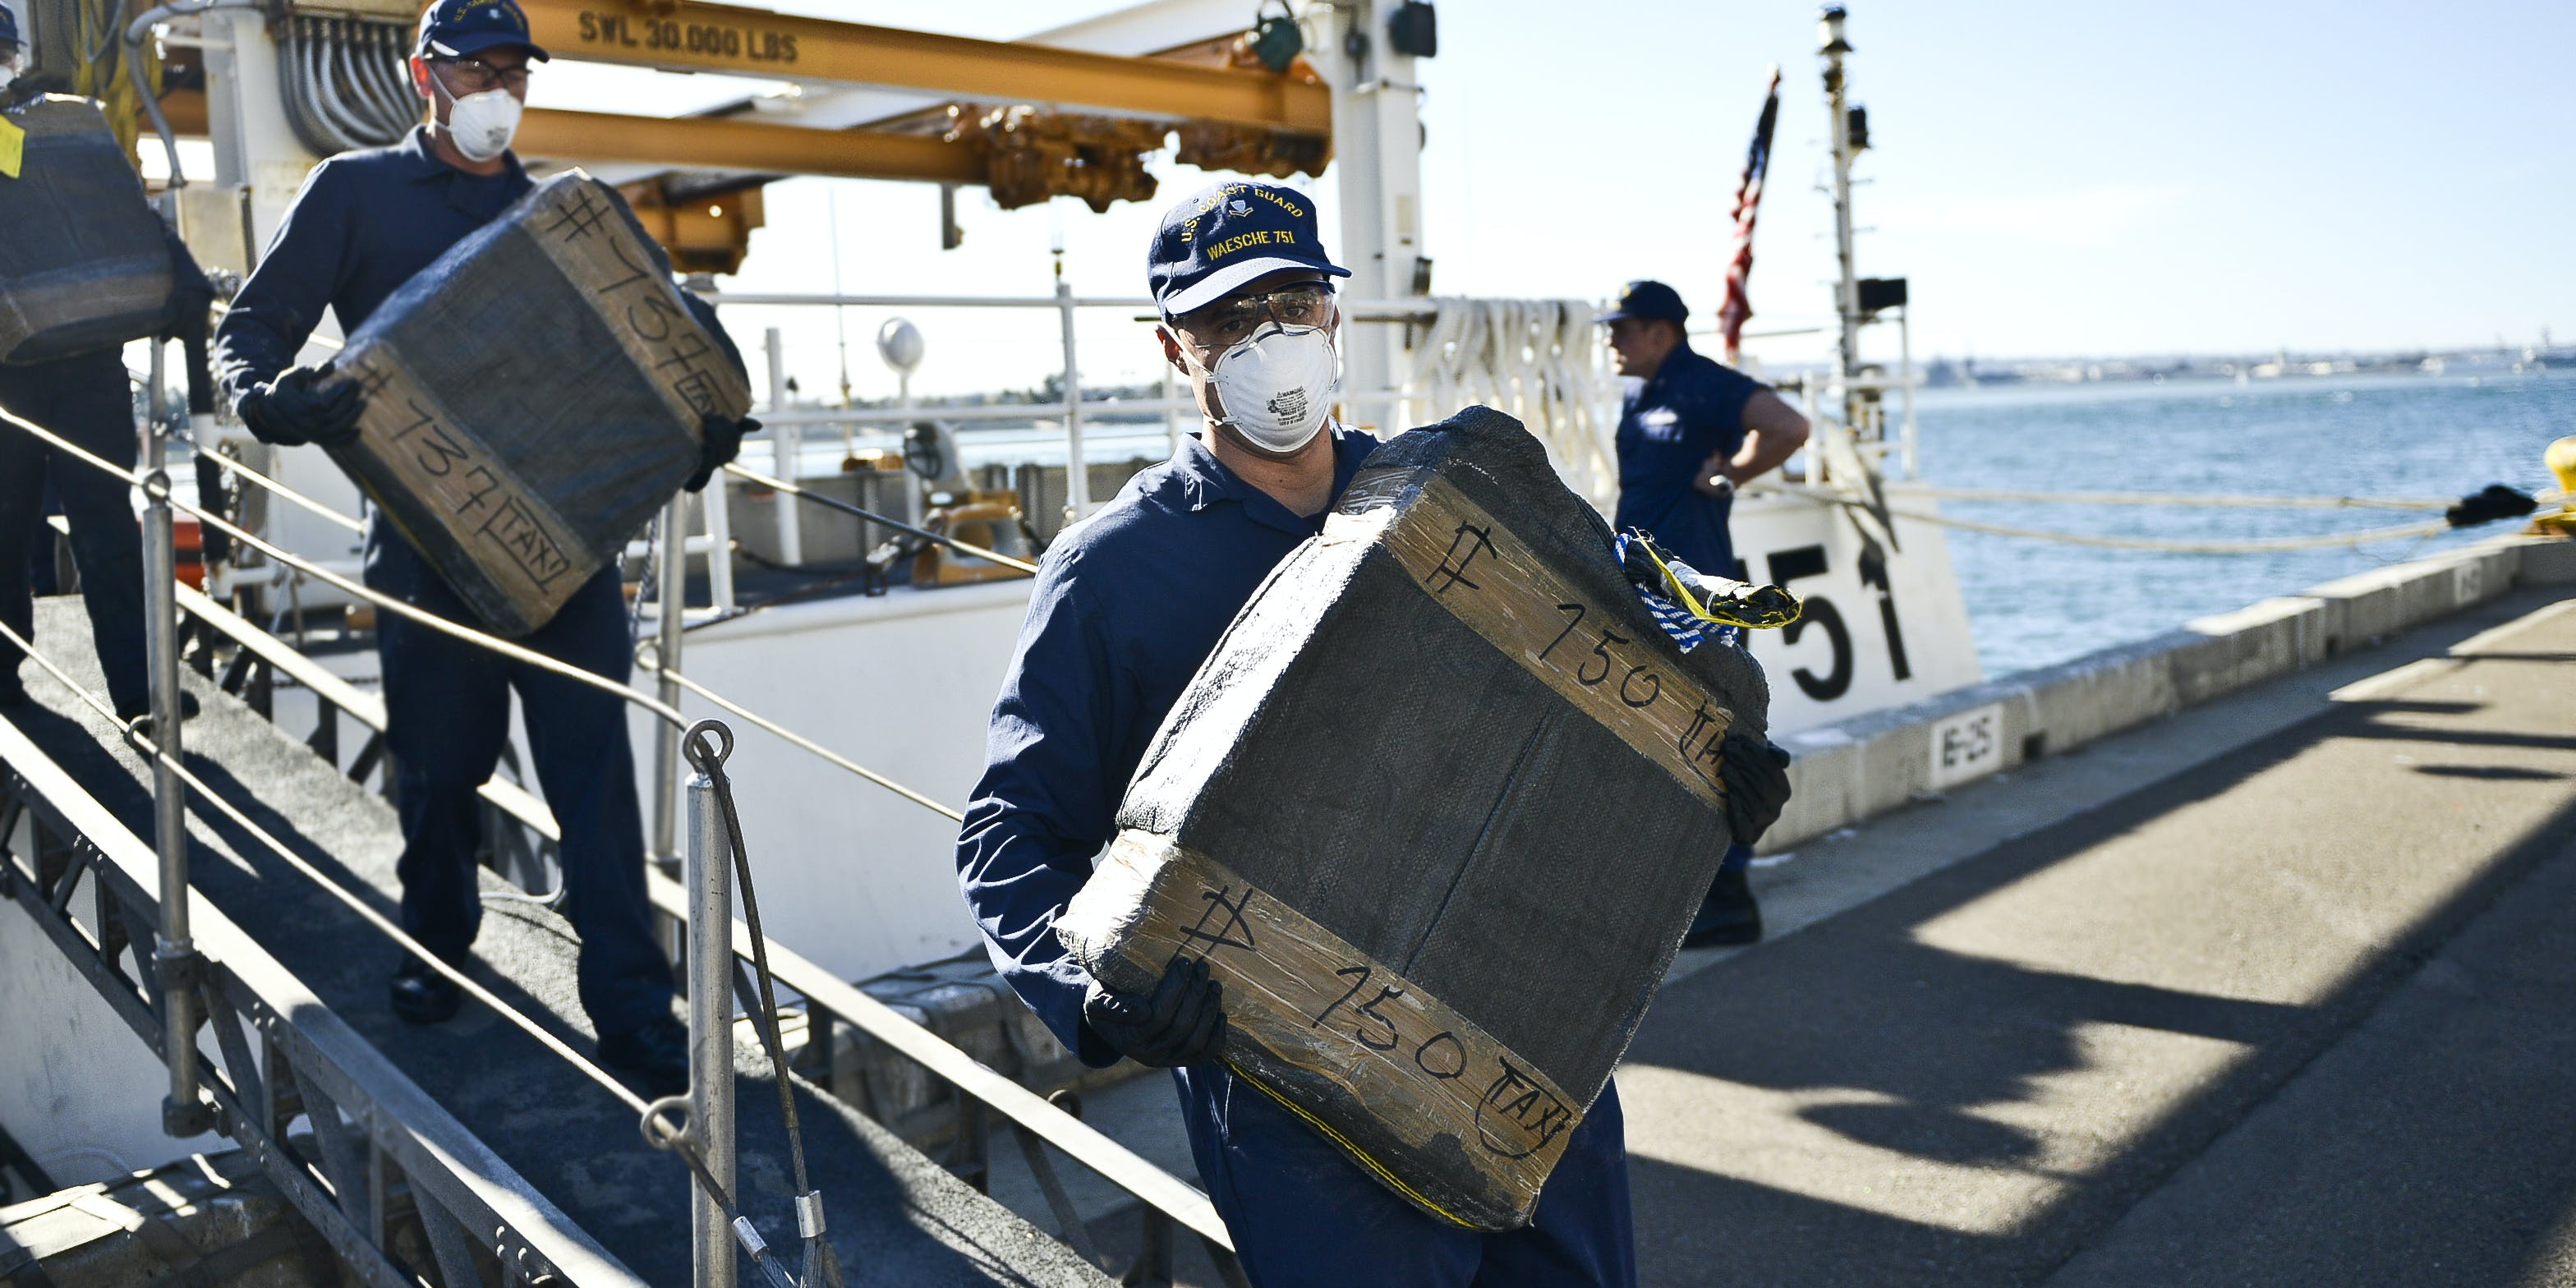 Crews from the U.S. Coast Guard Cutter Waesche offload nearly 660 kilograms of narcotics in 2015. Nearly 500 pounds of cannabis, $6000, and a gun were recently seized during the arrest of two individuals trying to illegally cross the border off Florida's coastline.